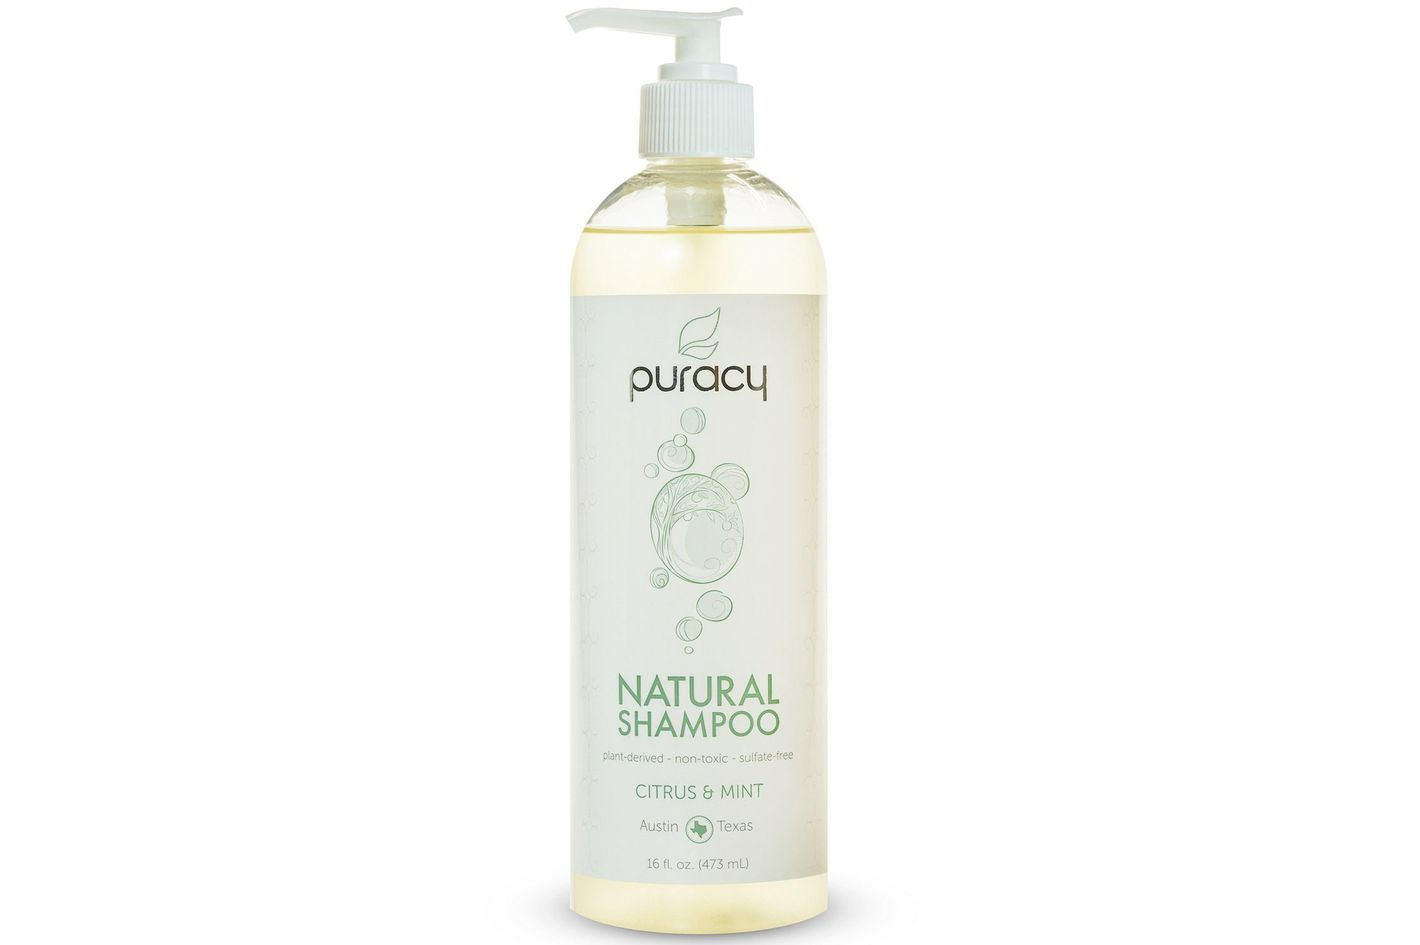 Puracy Natural Daily Sulfate-Free Hair Shampoo, Citrus & Mint